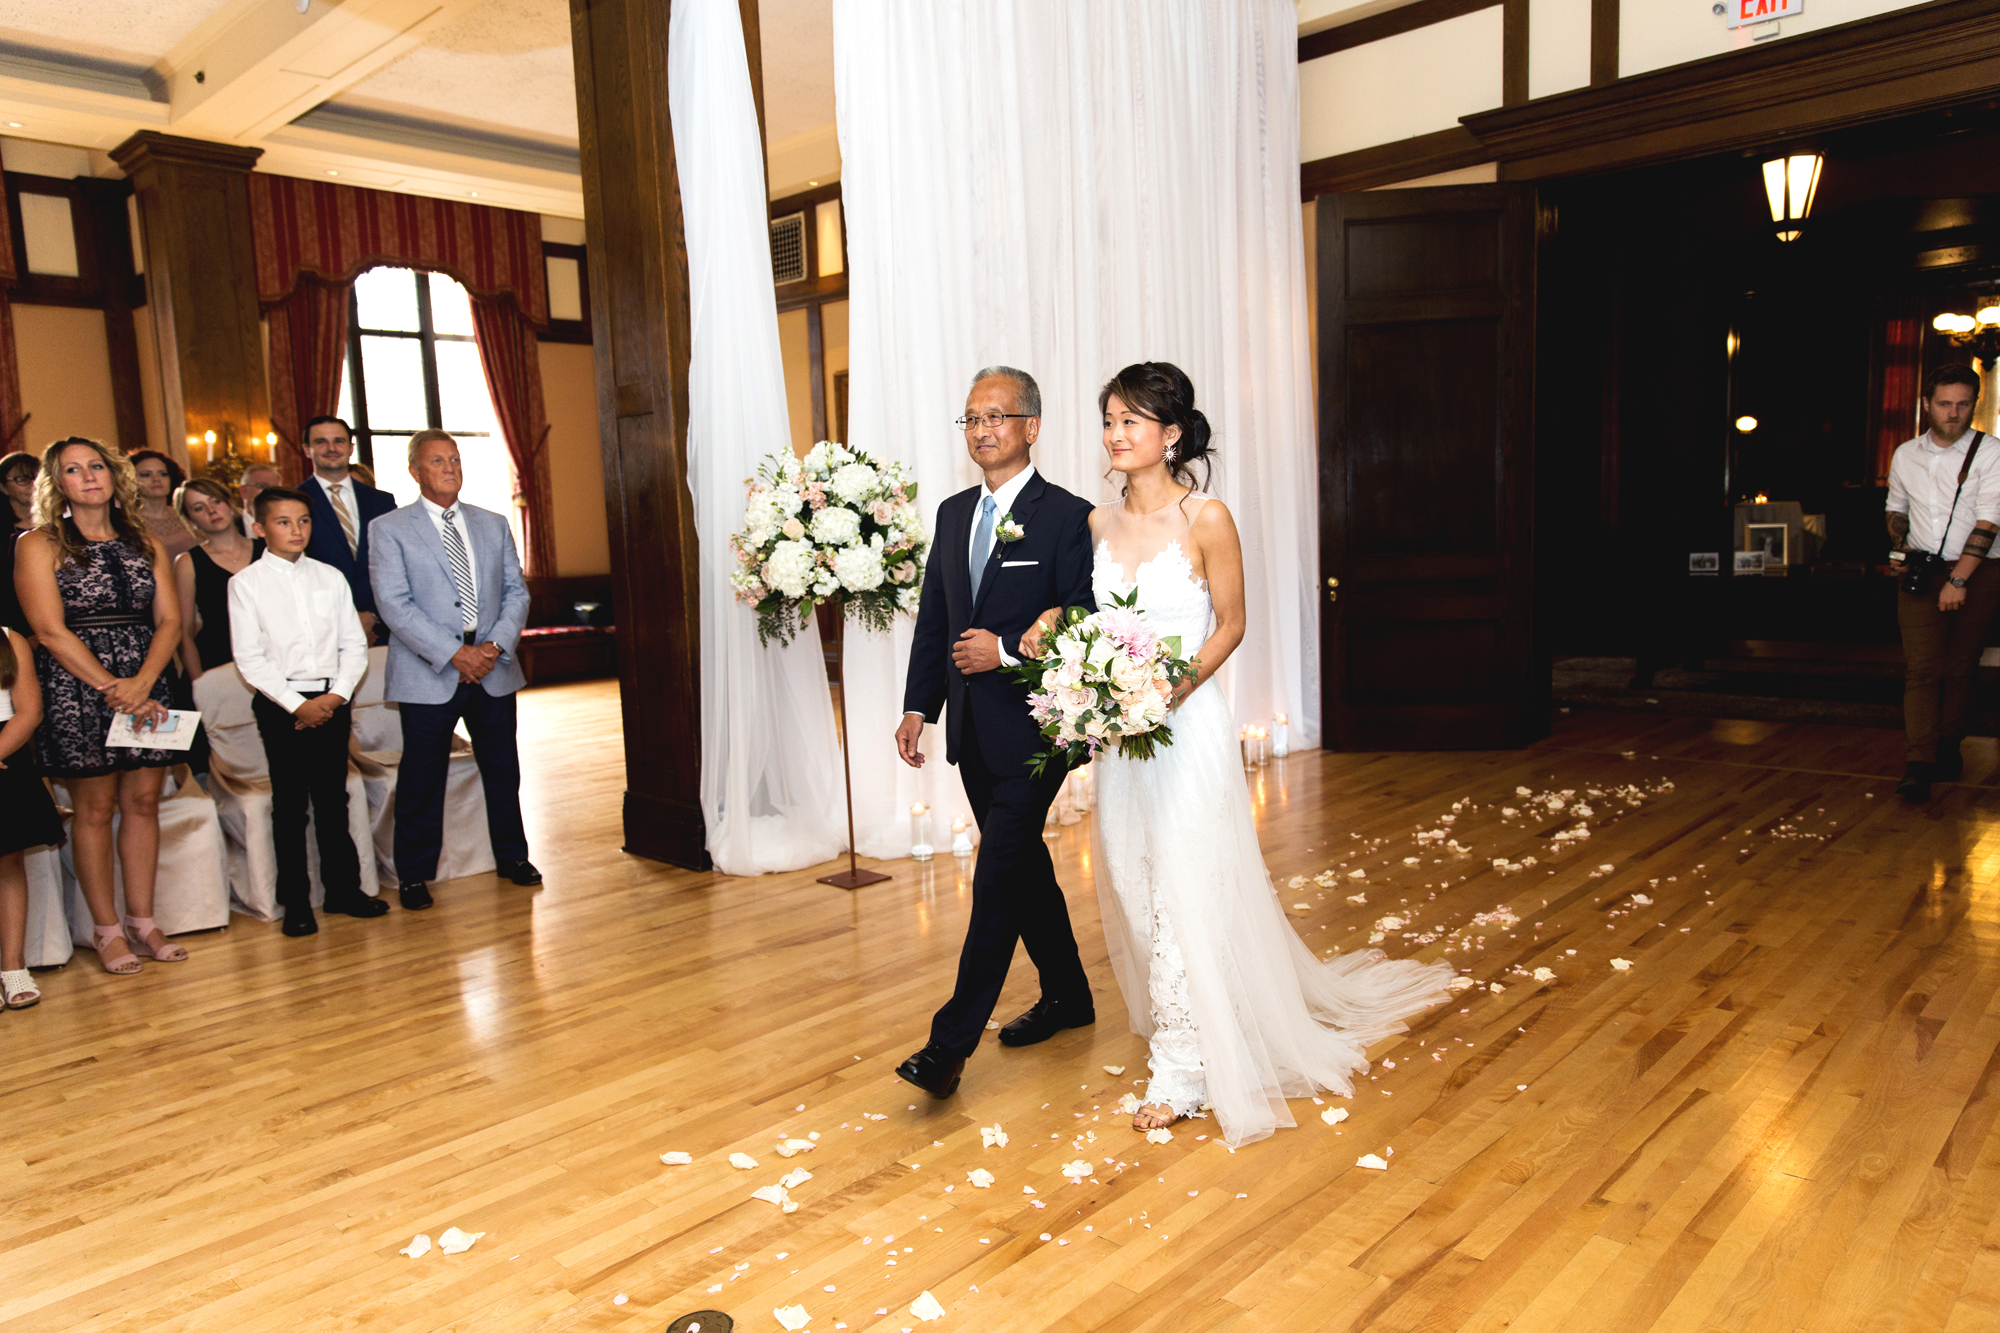 Minneapolis Club Wedding Minnesota | Photography by Nicole McCoy | Rivets & Roses